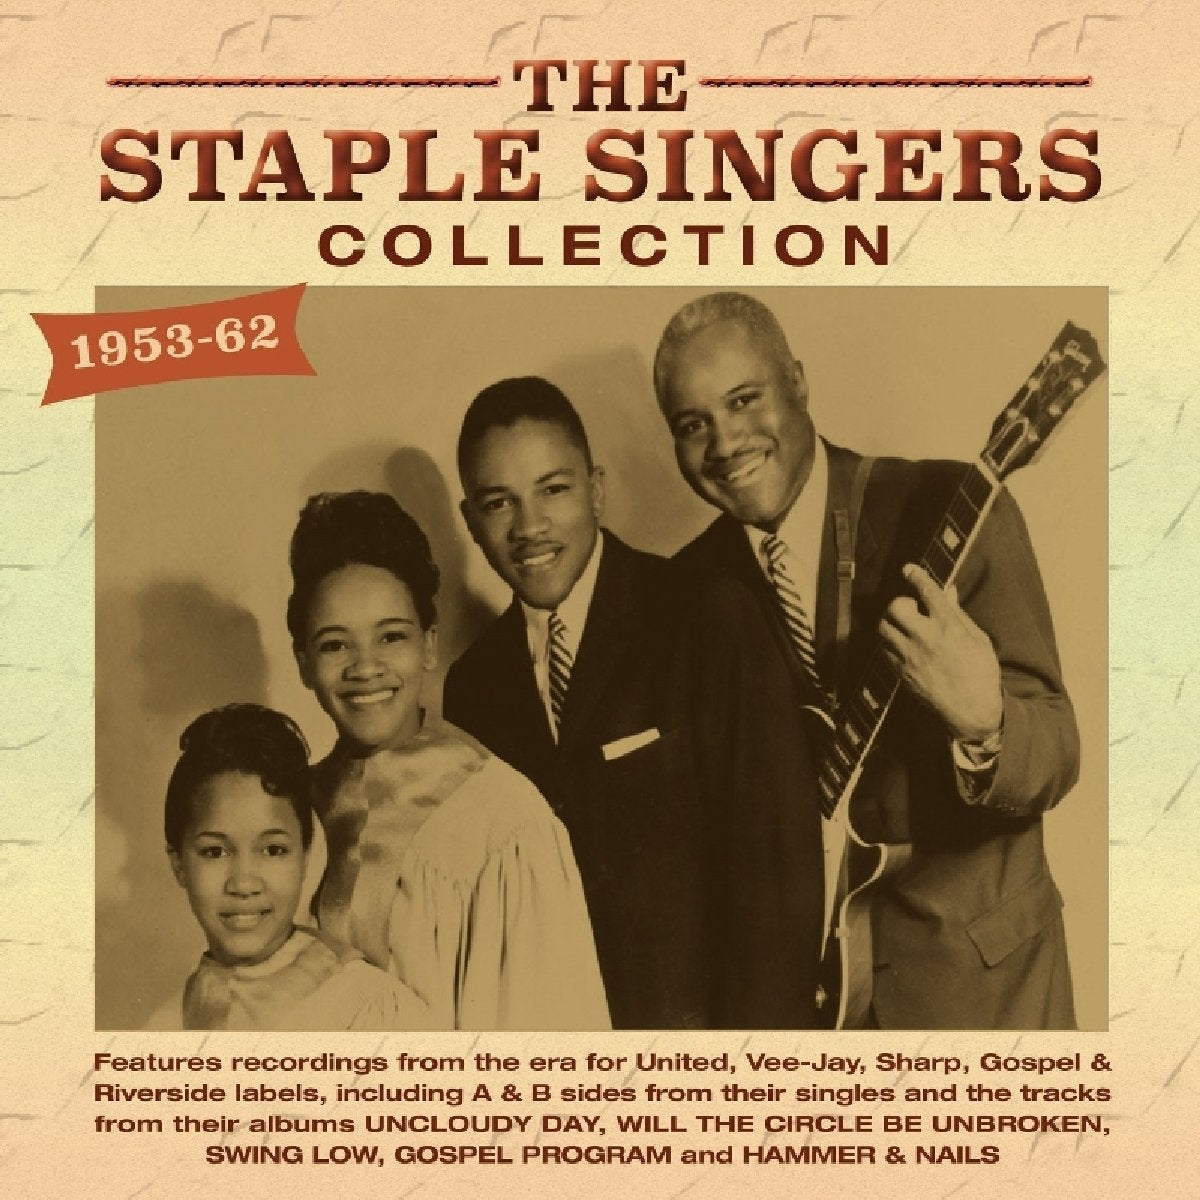 Staple Singers, The/1953 - 1962 Collection [CD]